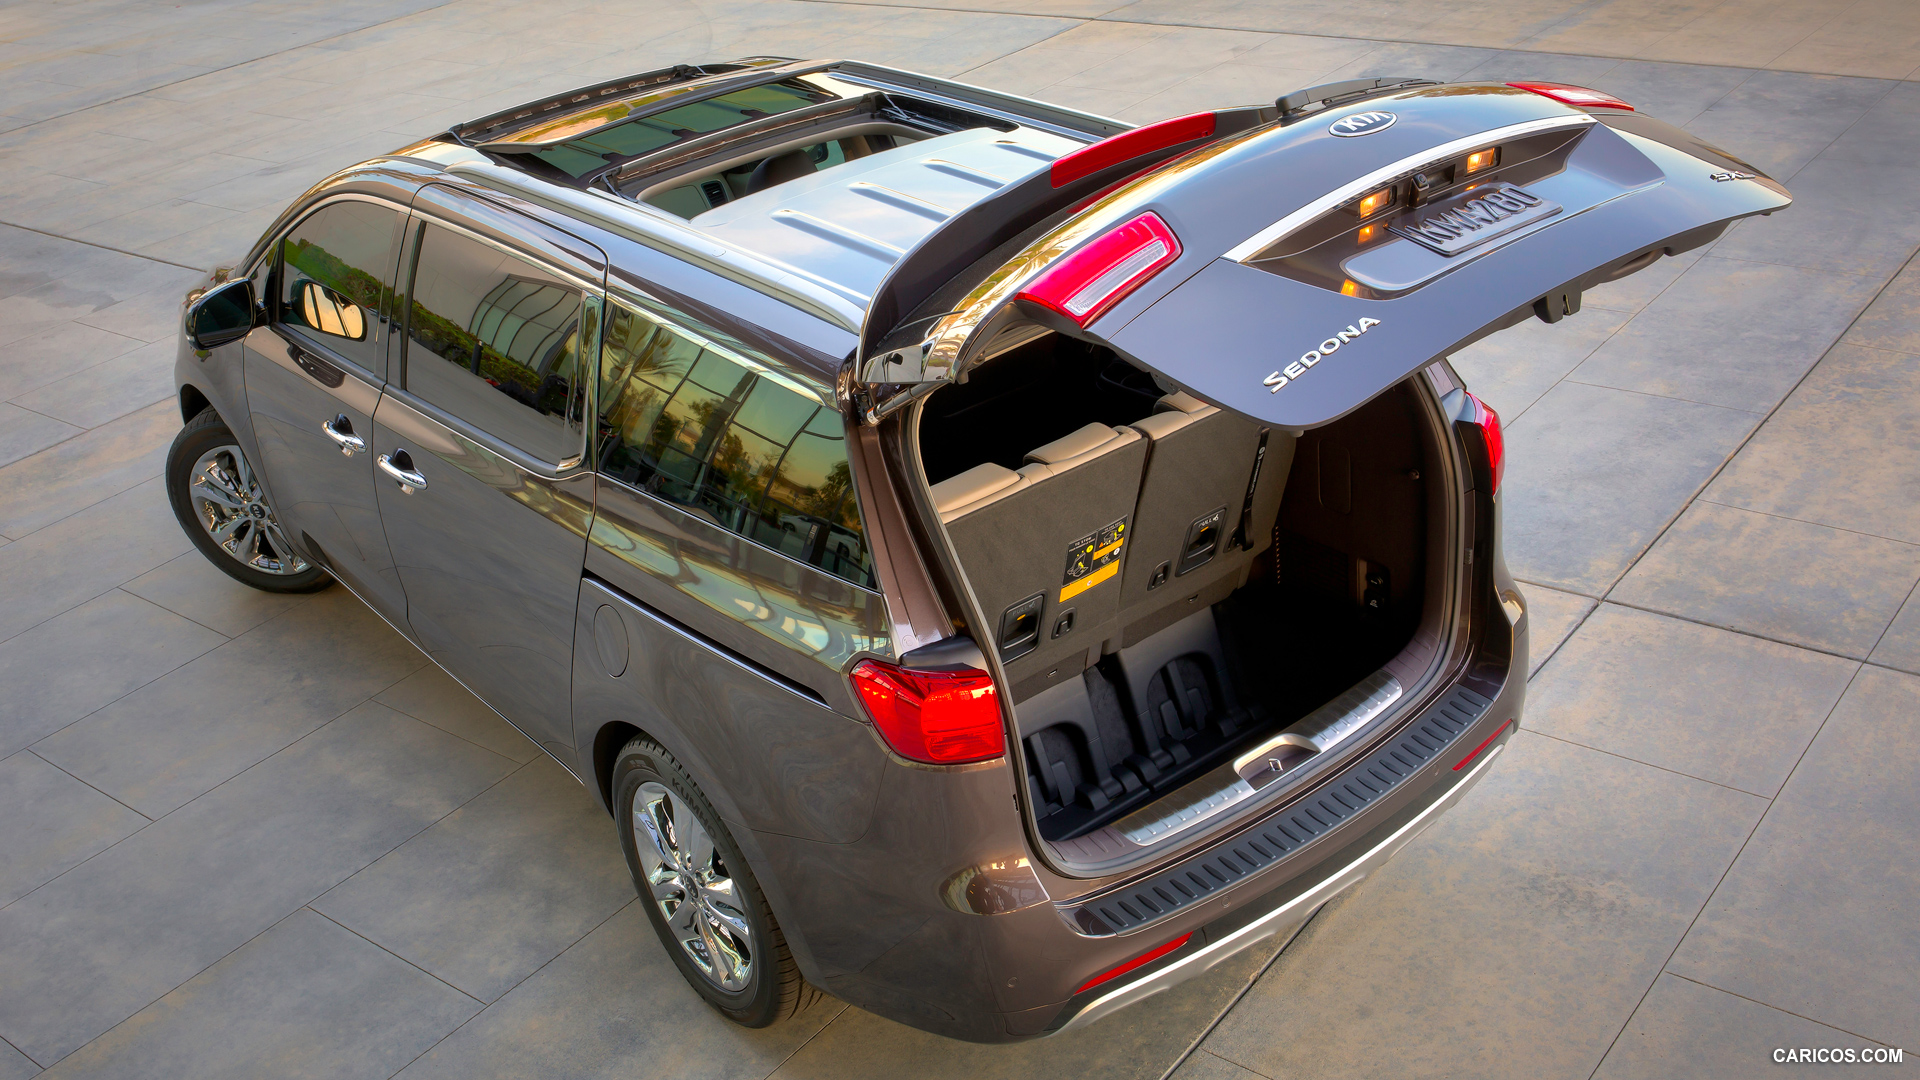 Kia Sedona photo 116654